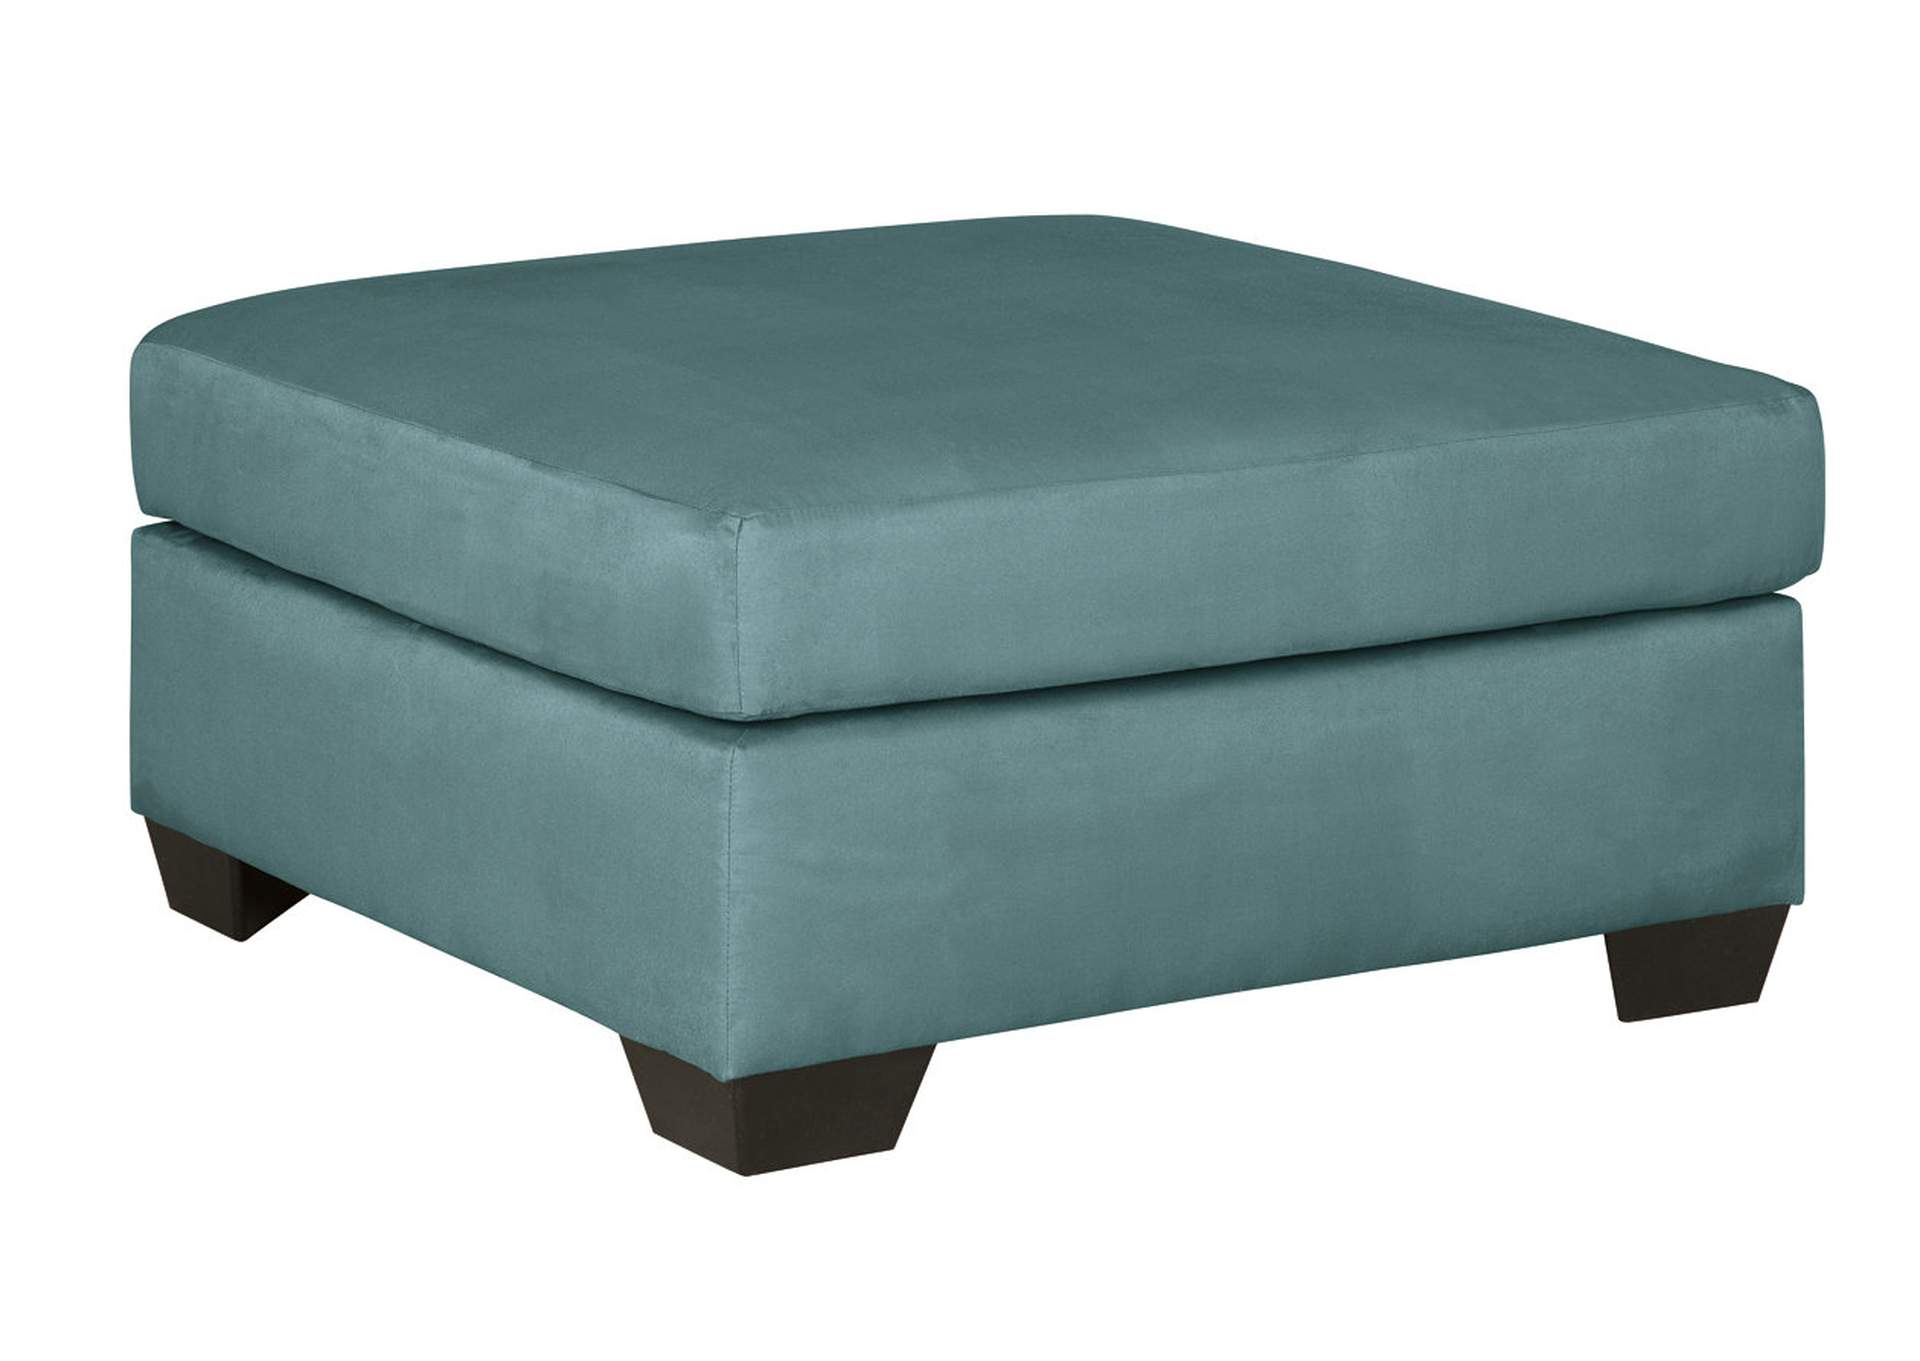 Darcy Sky Oversized Accent Ottoman,Signature Design By Ashley